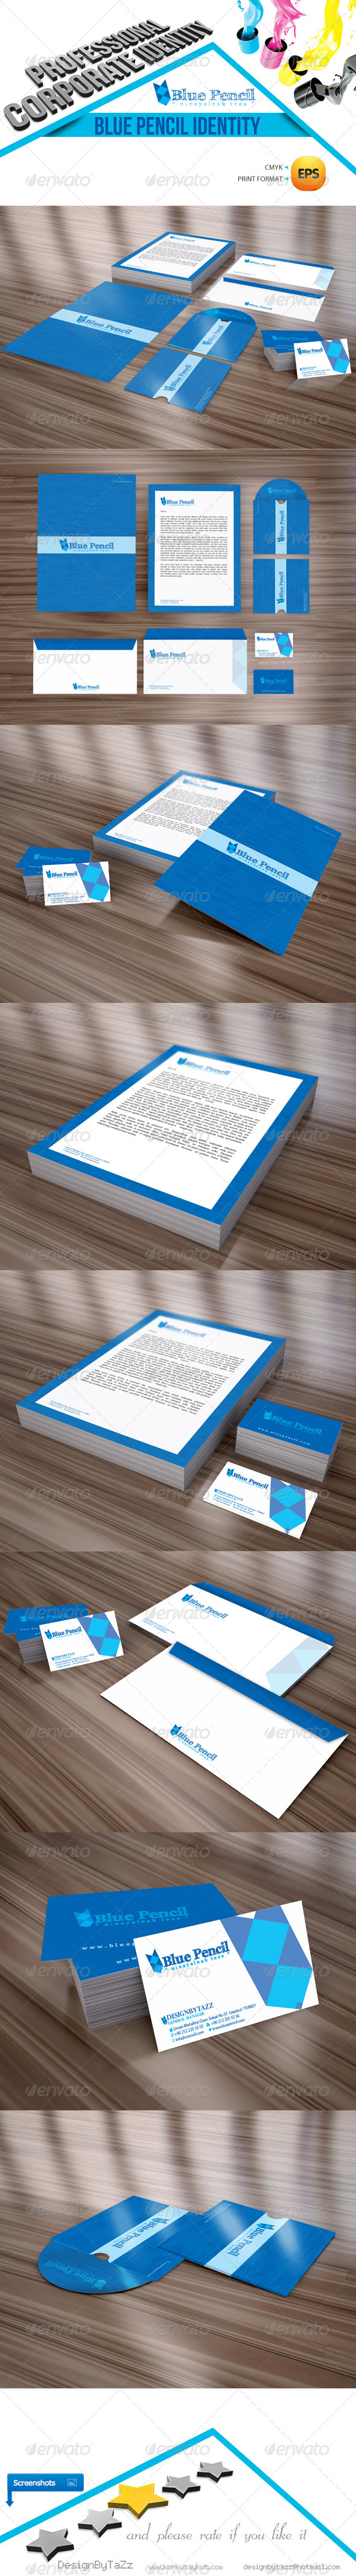 Blue Pencil Corporate Identity Package - Stationery Print Templates